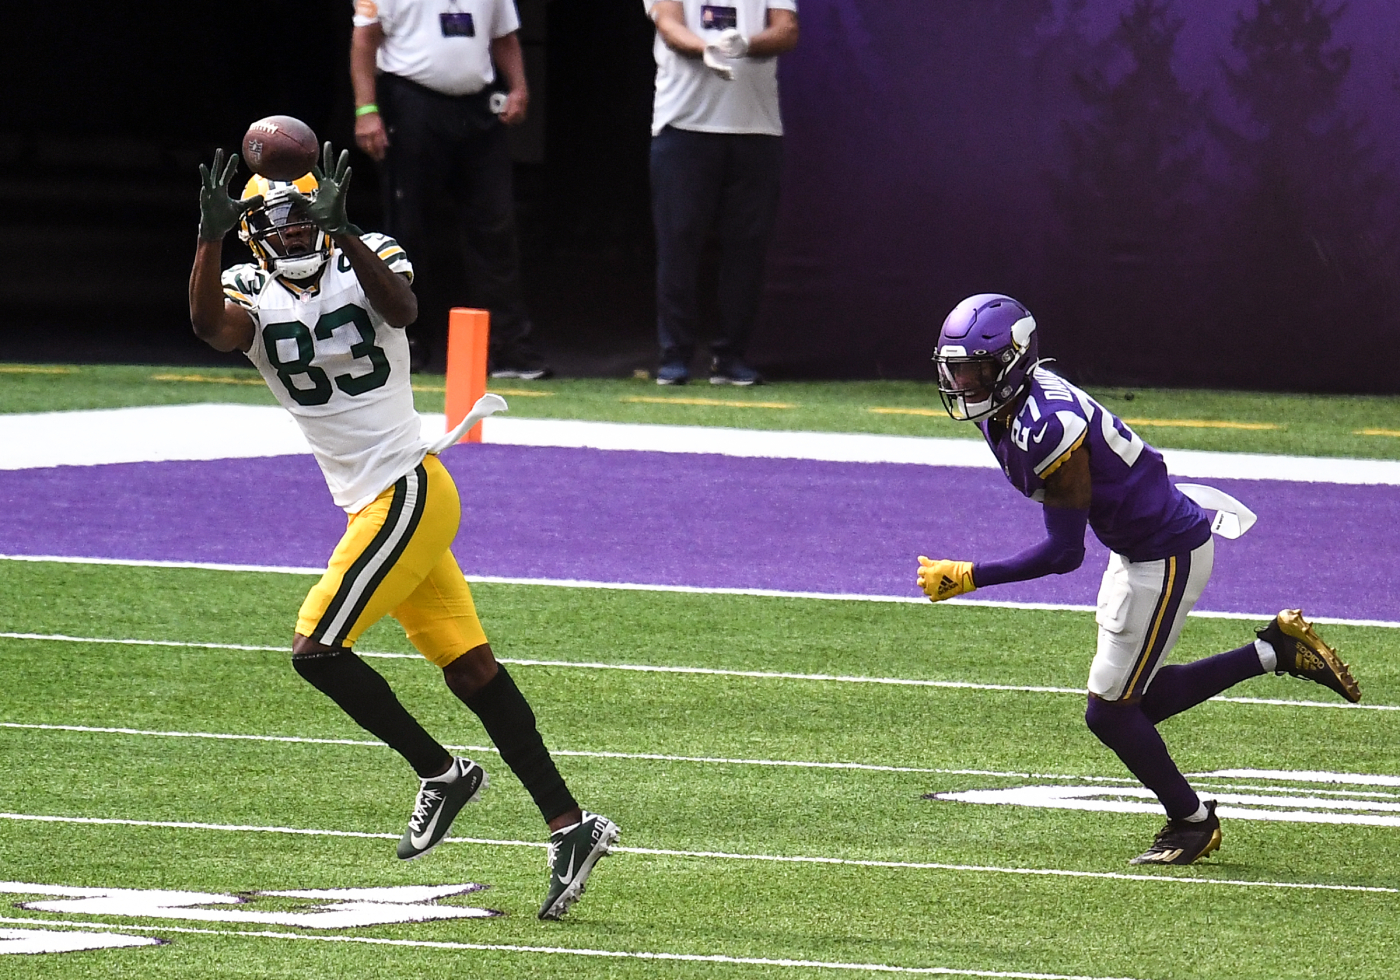 Marquez Valdes-Scantling and the Green Bay Packers wide receivers had a strong day Sunday.